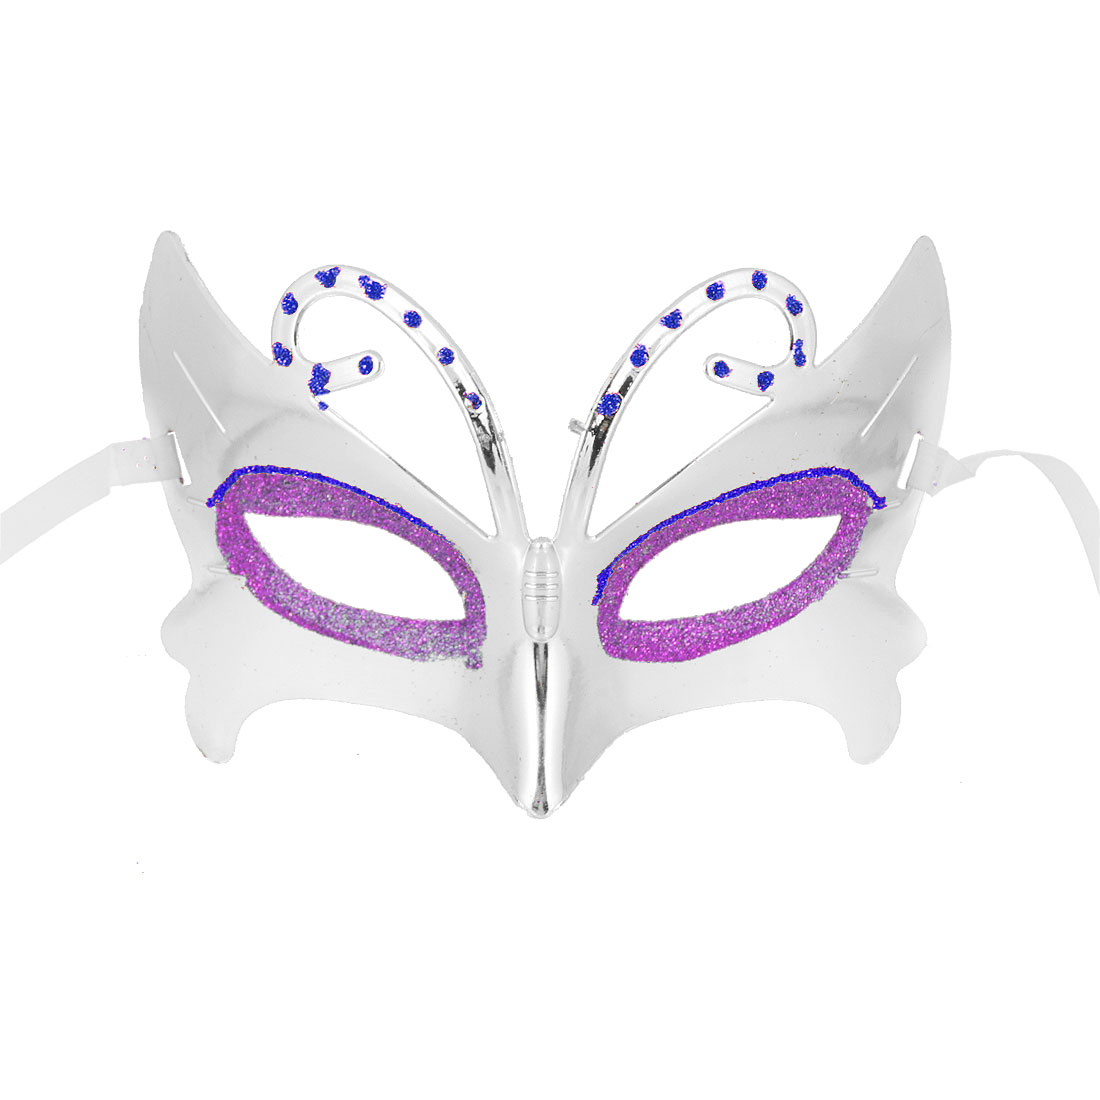 Blue Rhinestone Inlaided Halloween Masquerade Plastic Face Mask Silver Tone